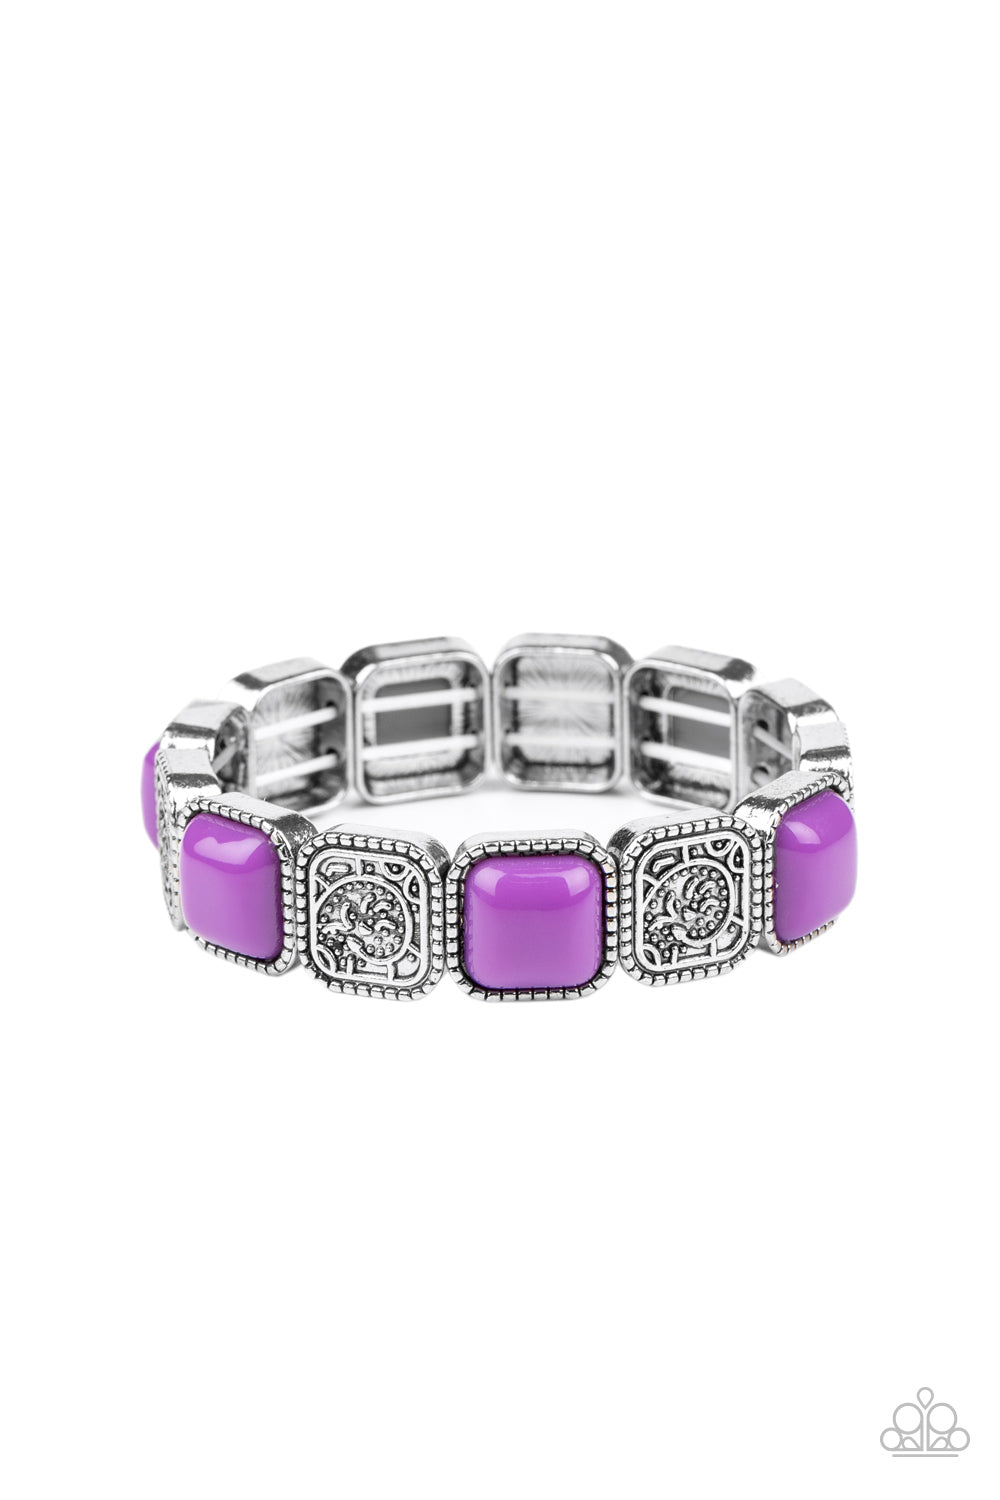 five-dollar-jewelry-trendy-tease-purple-bracelet-paparazzi-accessories